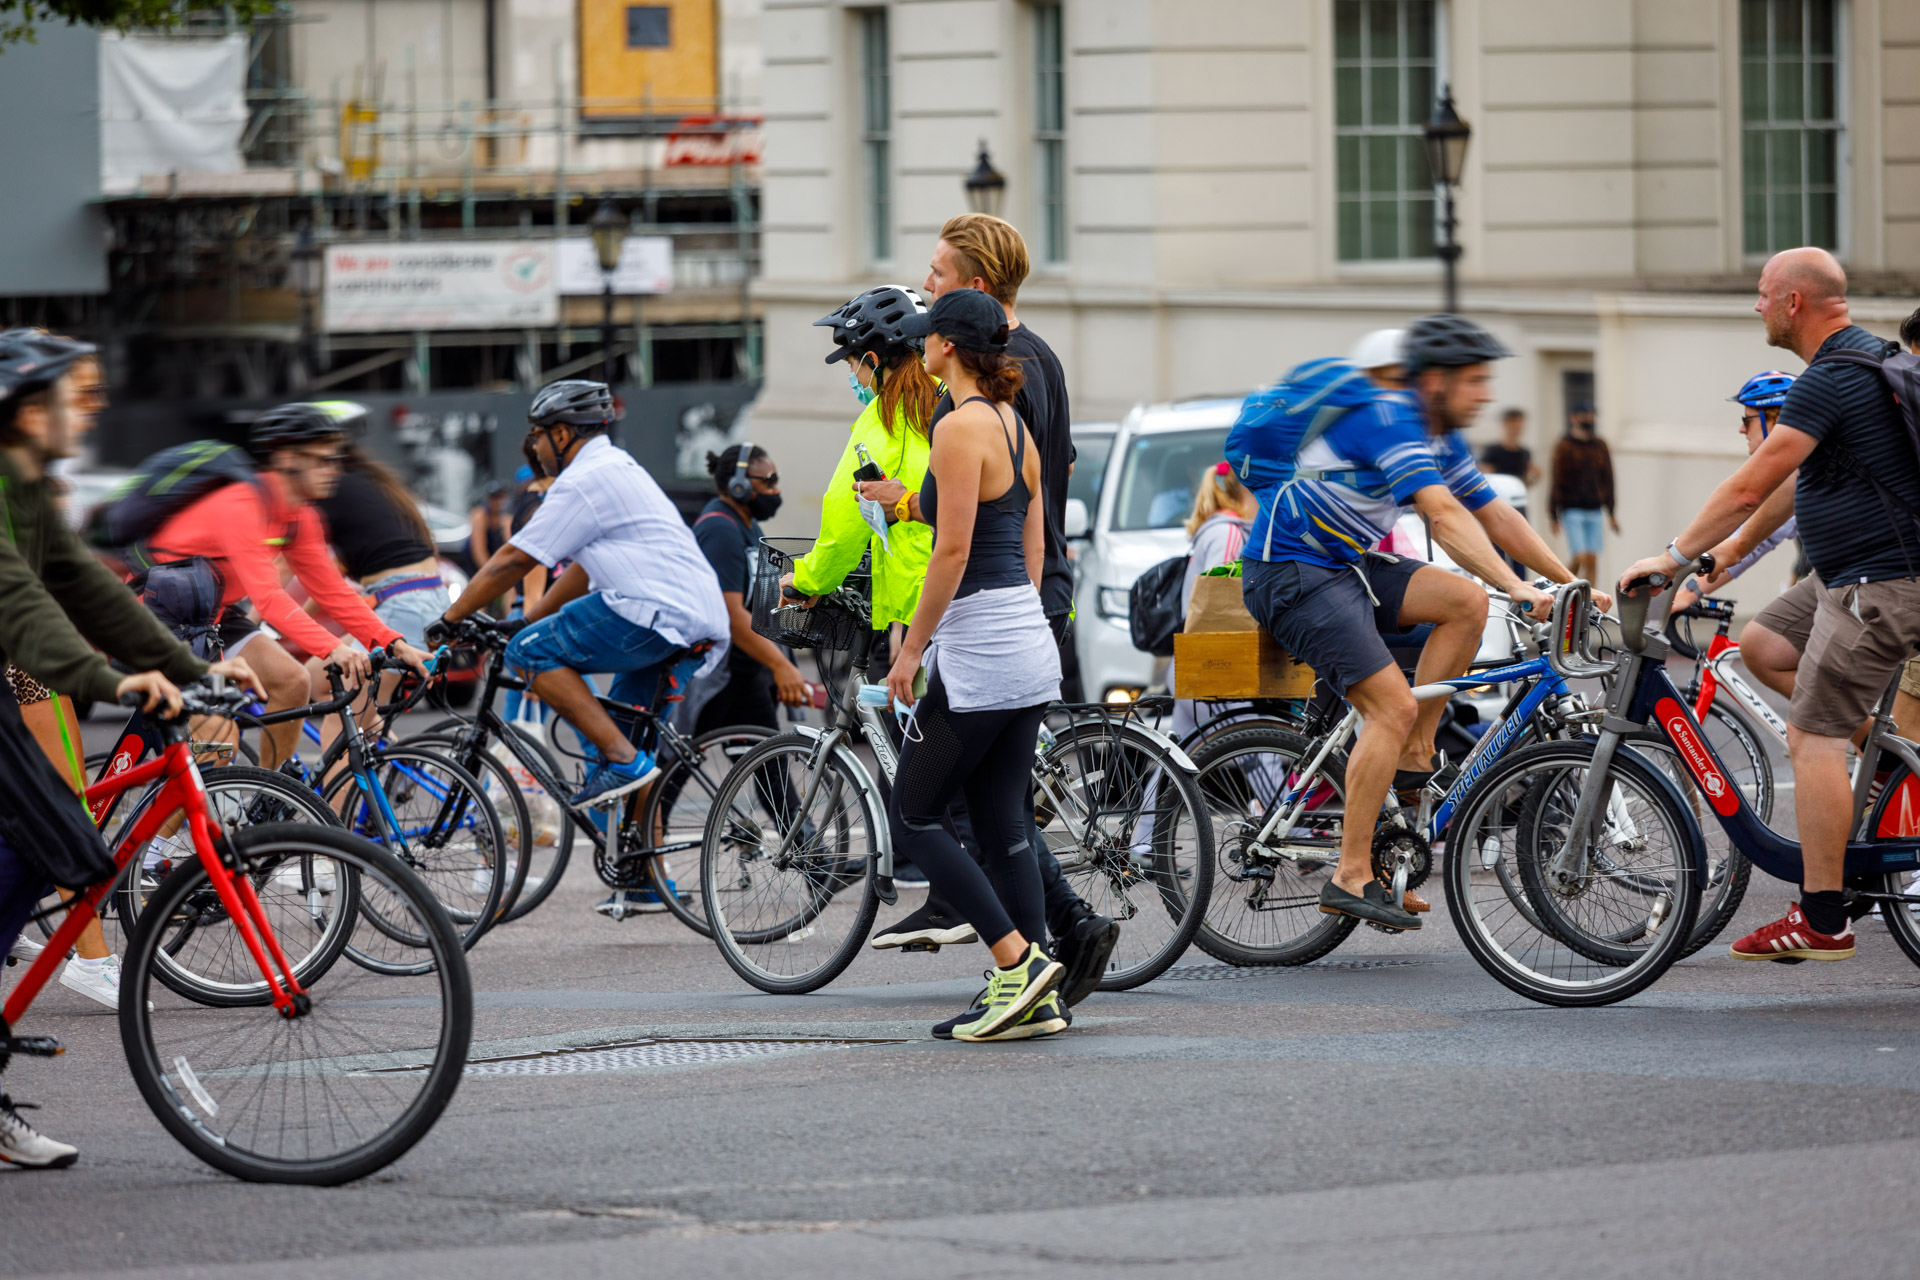 A large group of people on bikes cross a city junction in both directions